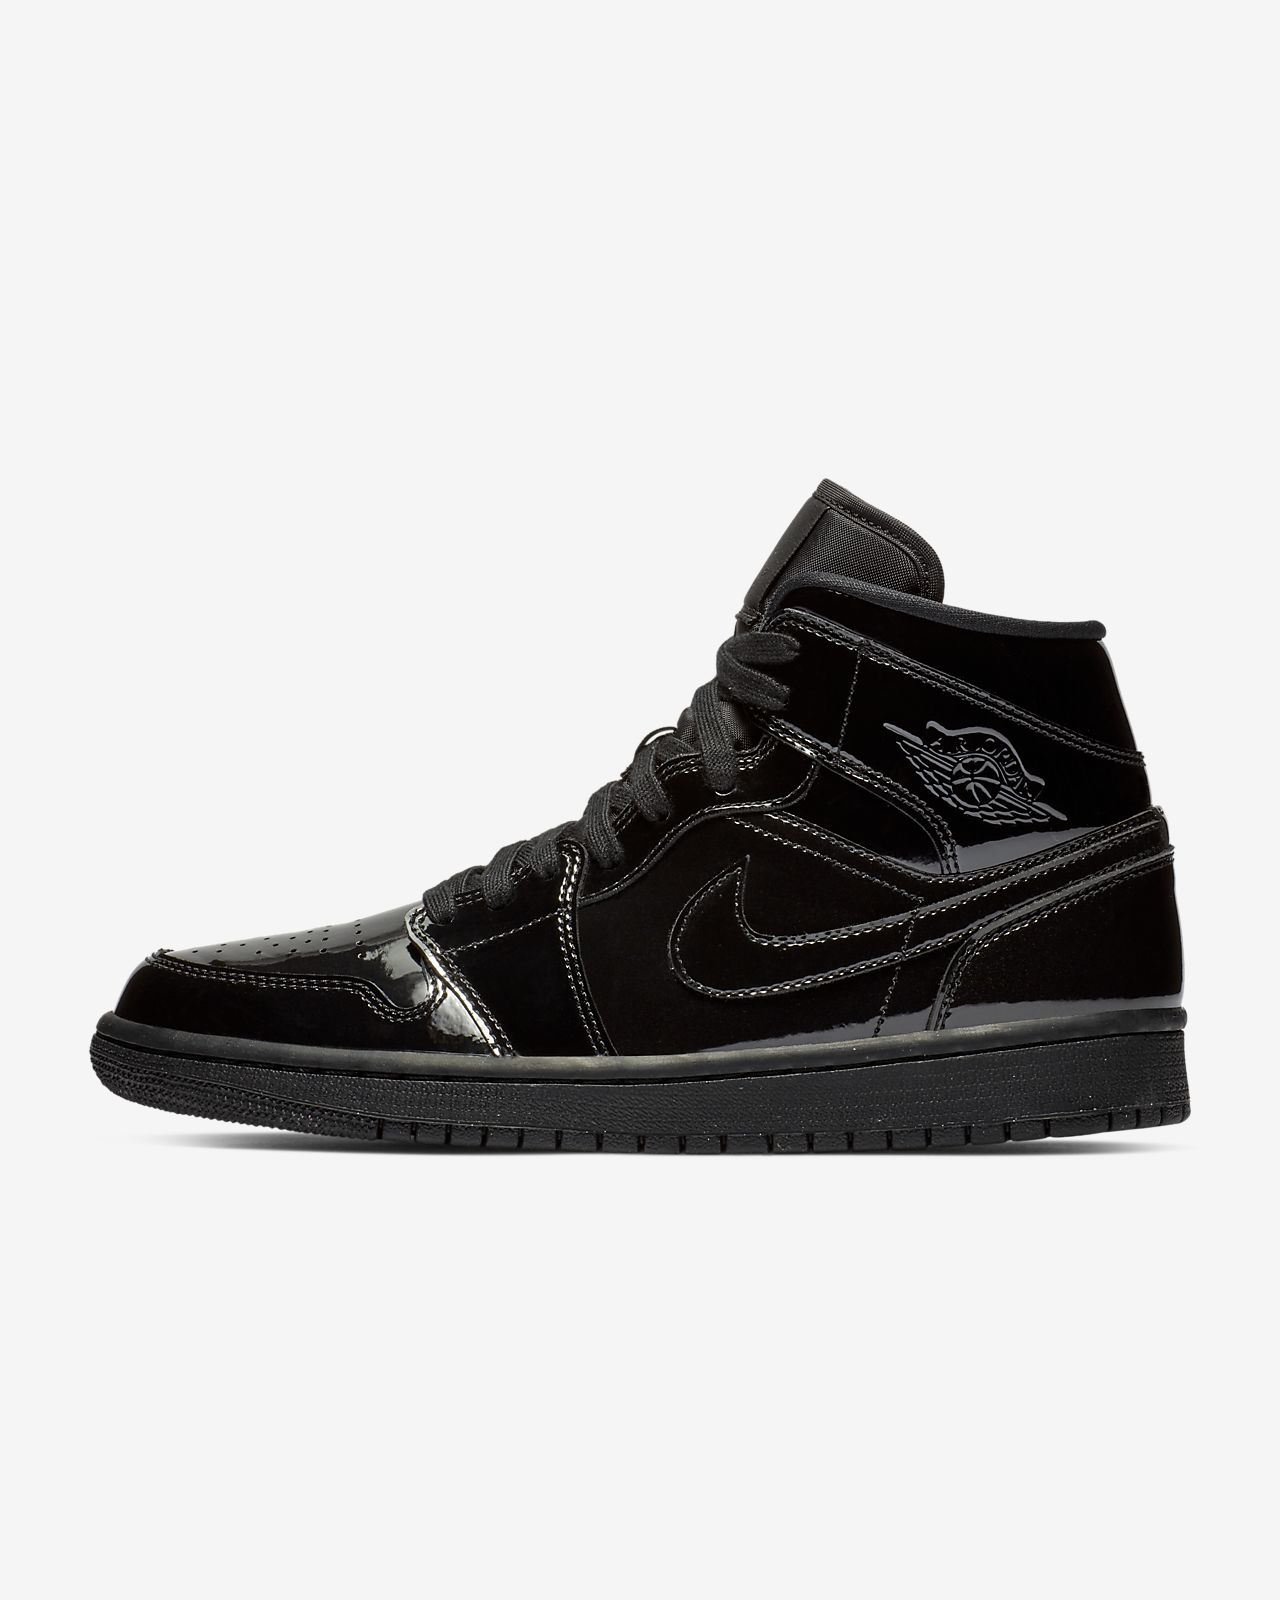 98dc338b63c4 Air Jordan 1 Mid Women s Shoe. Nike.com